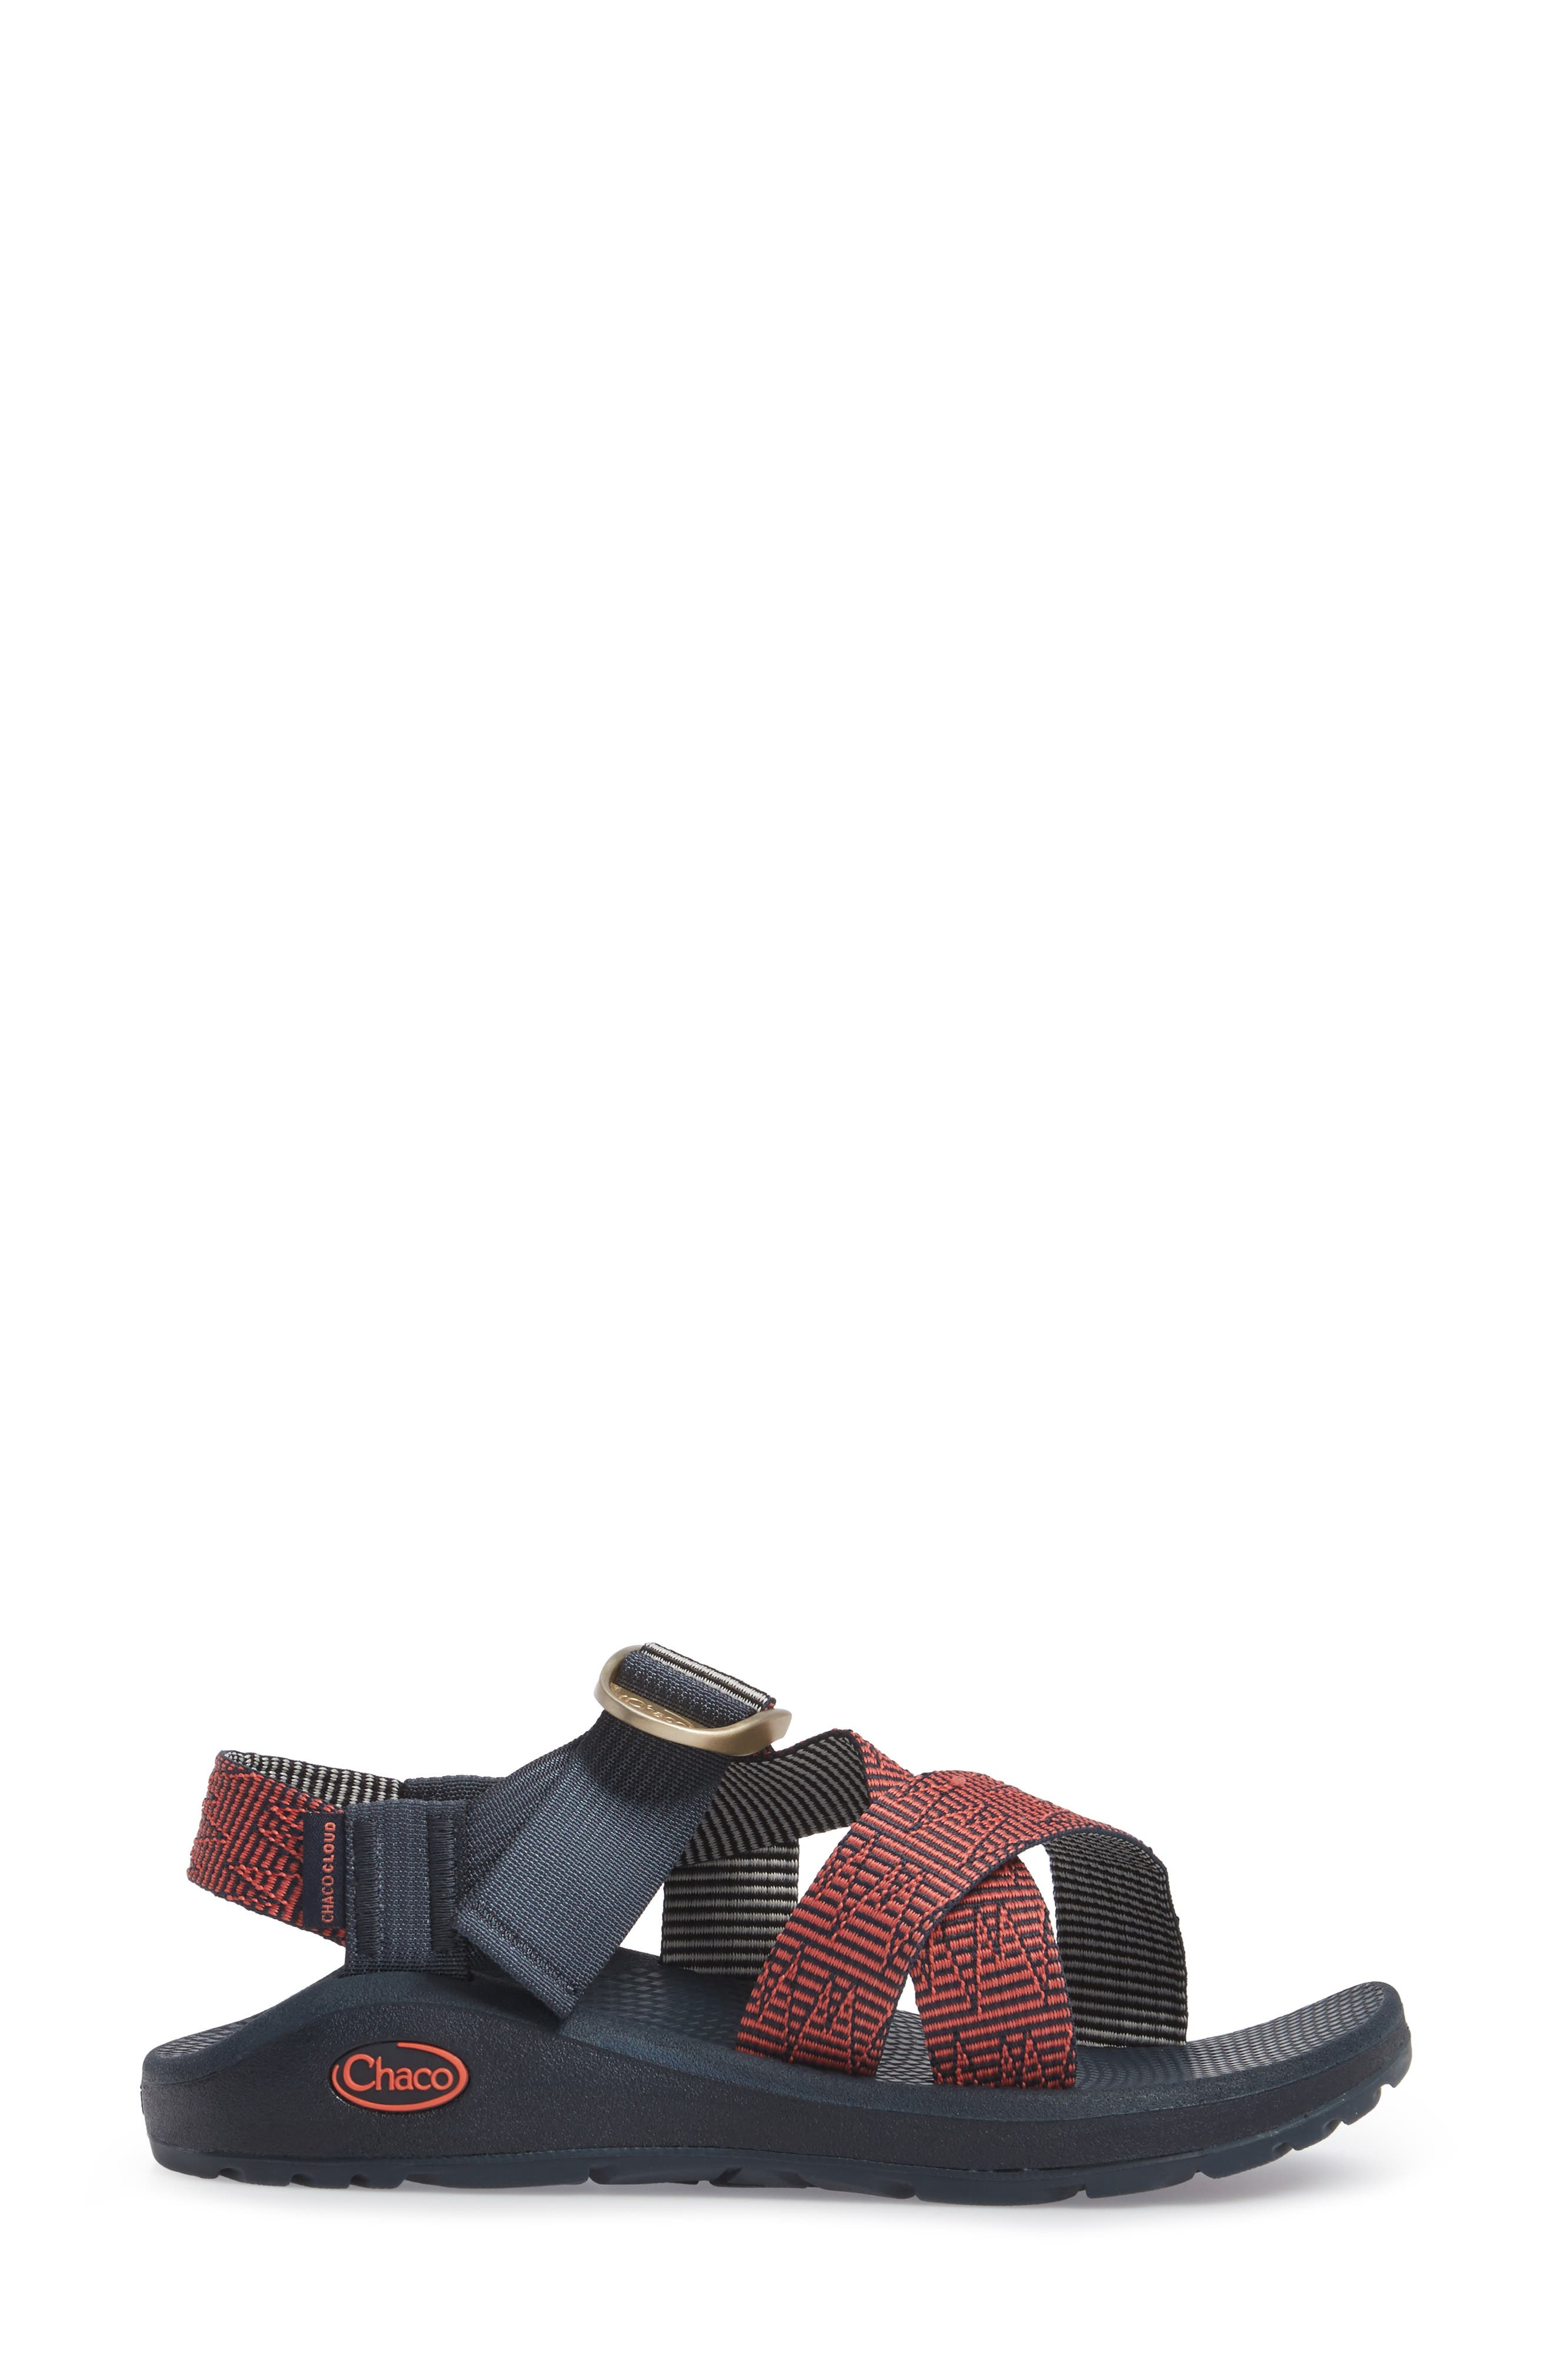 Mega Z/Cloud Sport Sandal,                             Alternate thumbnail 3, color,                             Blazer Navy